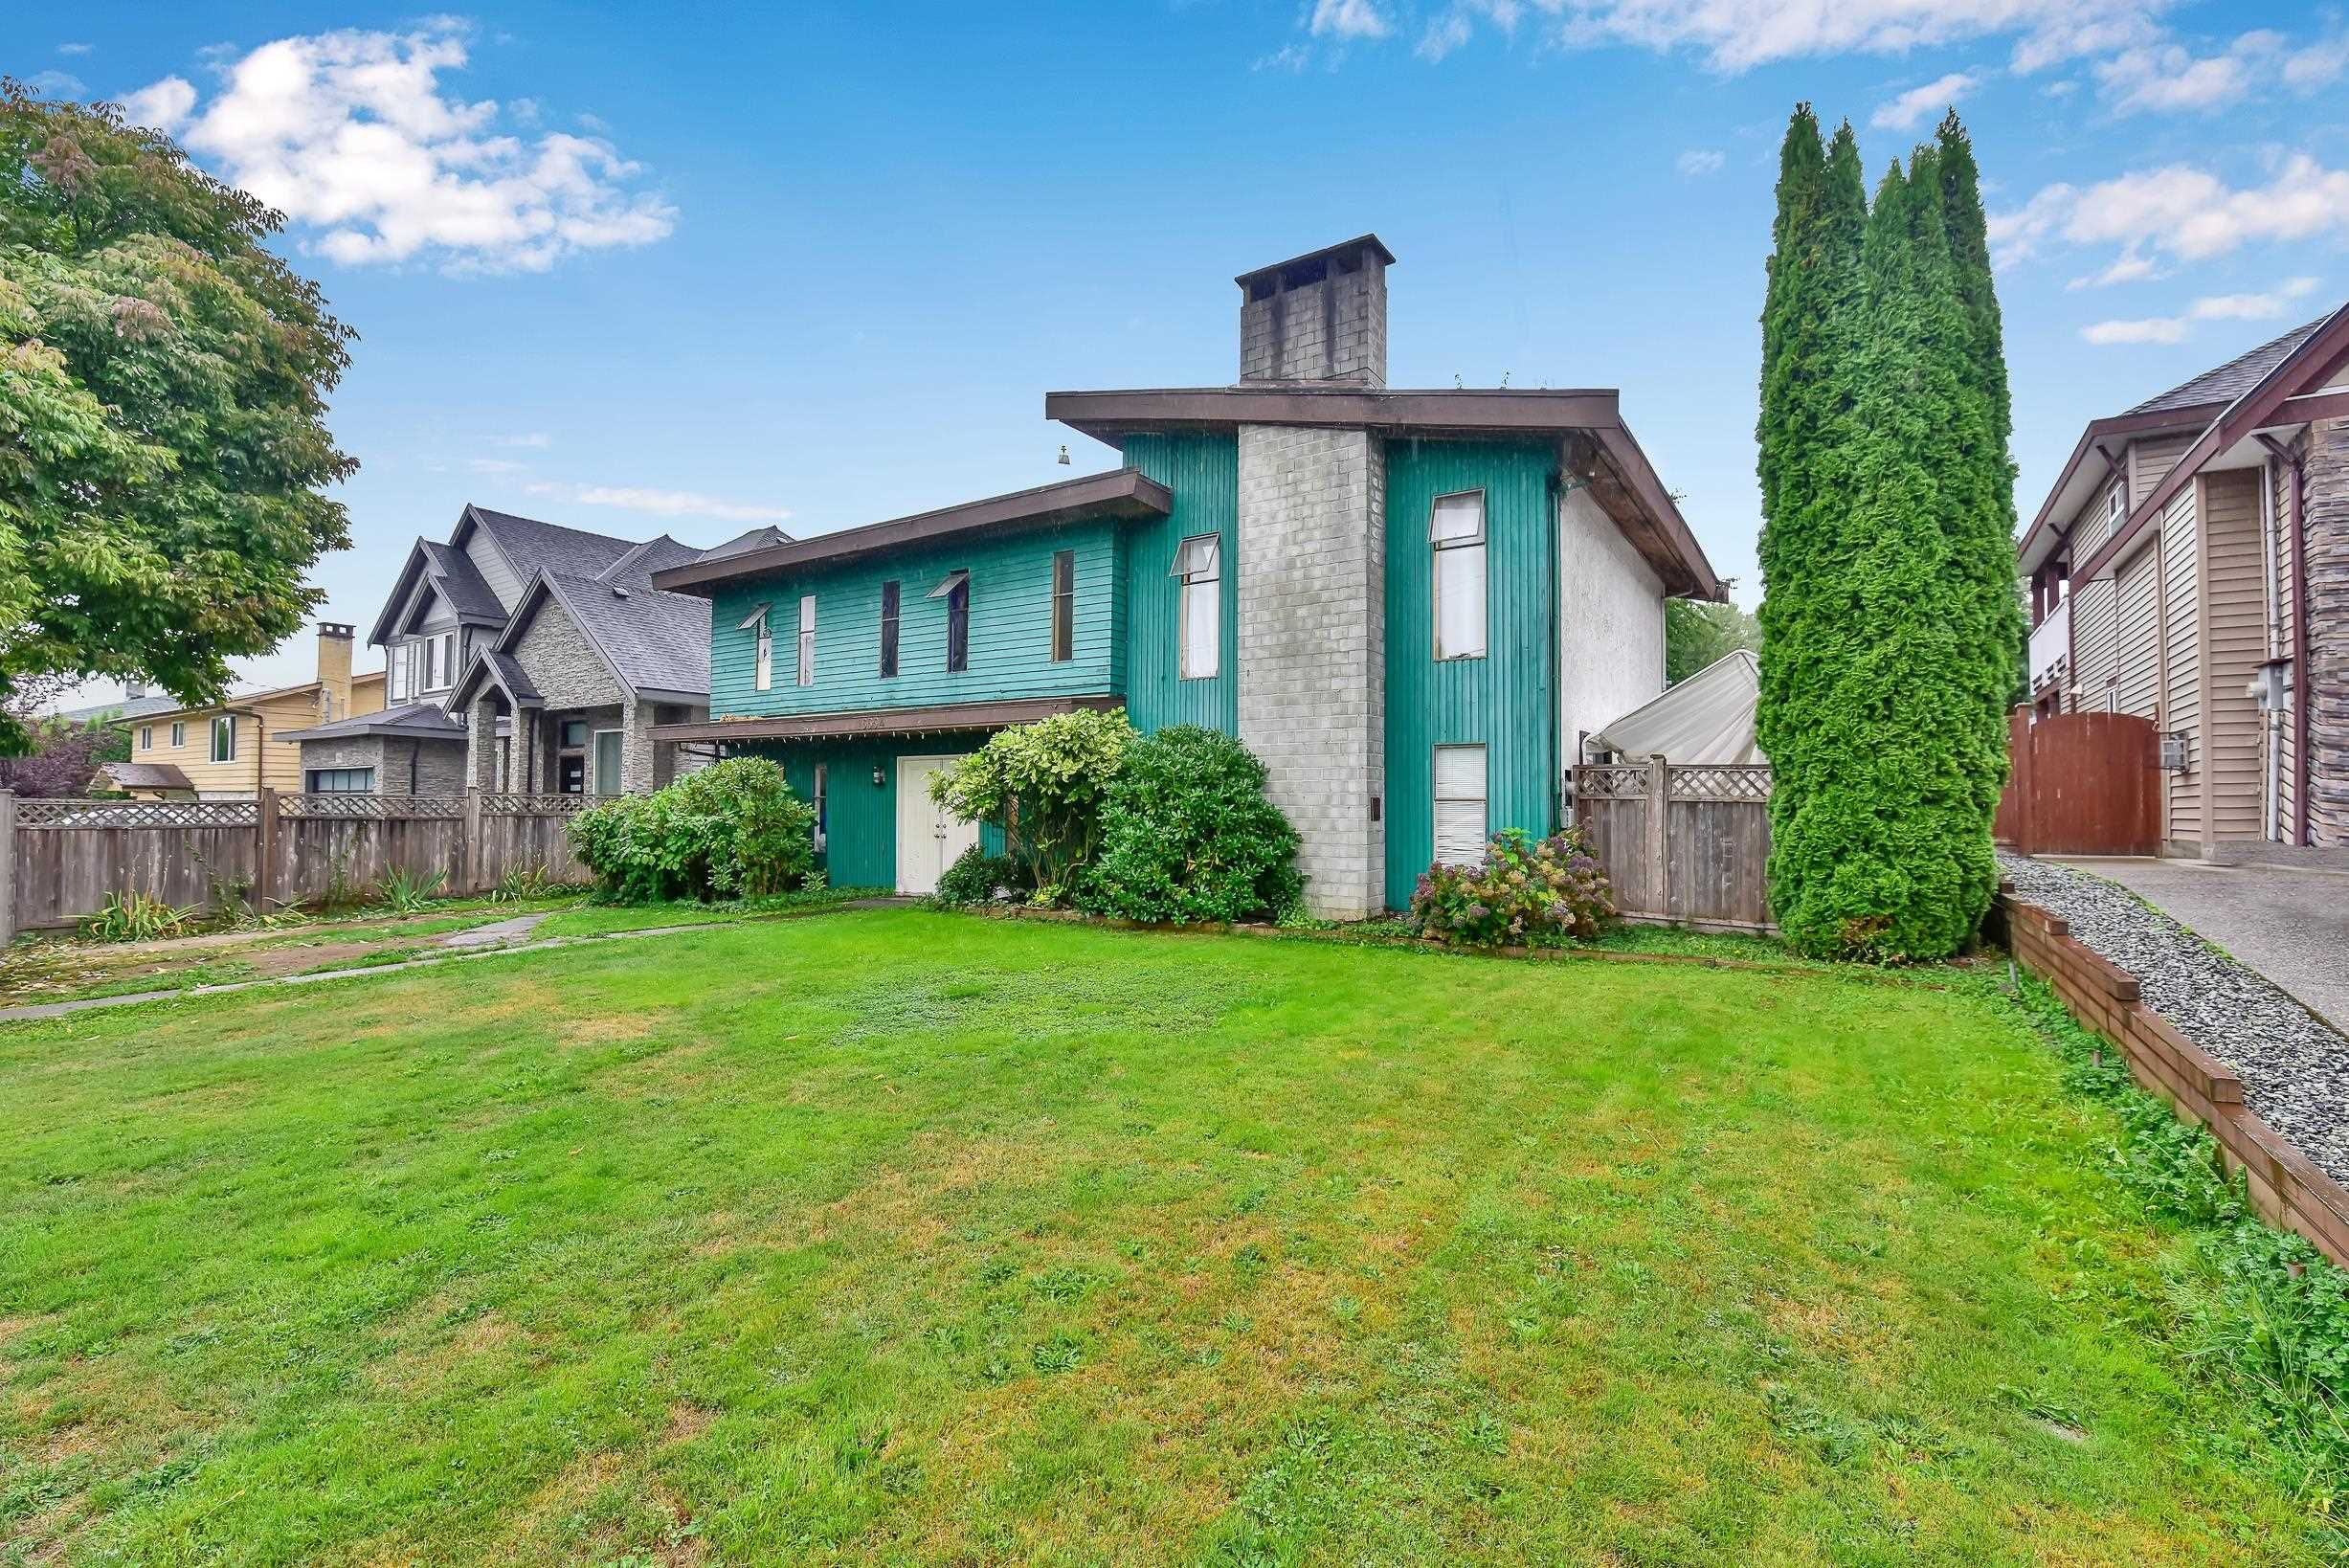 Main Photo: 15554 104A Avenue in Surrey: Guildford House for sale (North Surrey)  : MLS®# R2545063